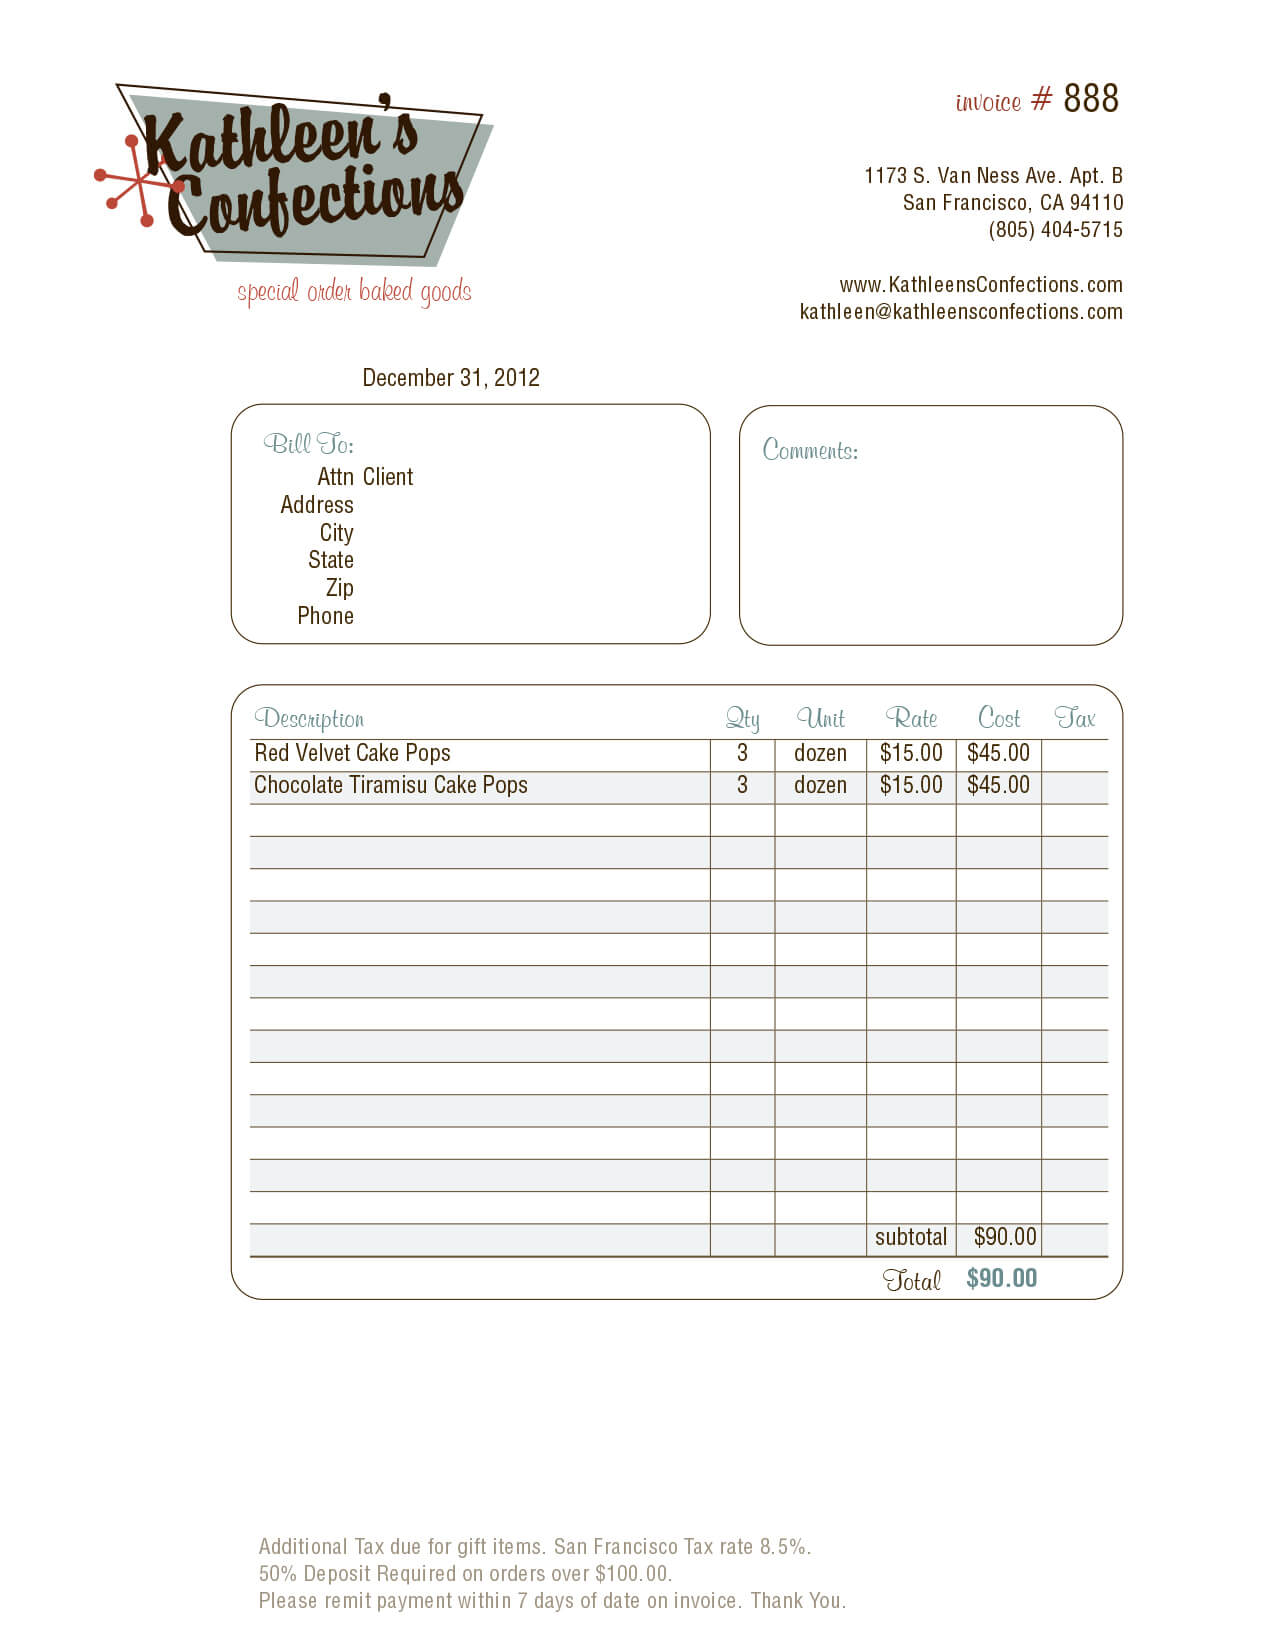 Kathleen's Confections Sample Invoice